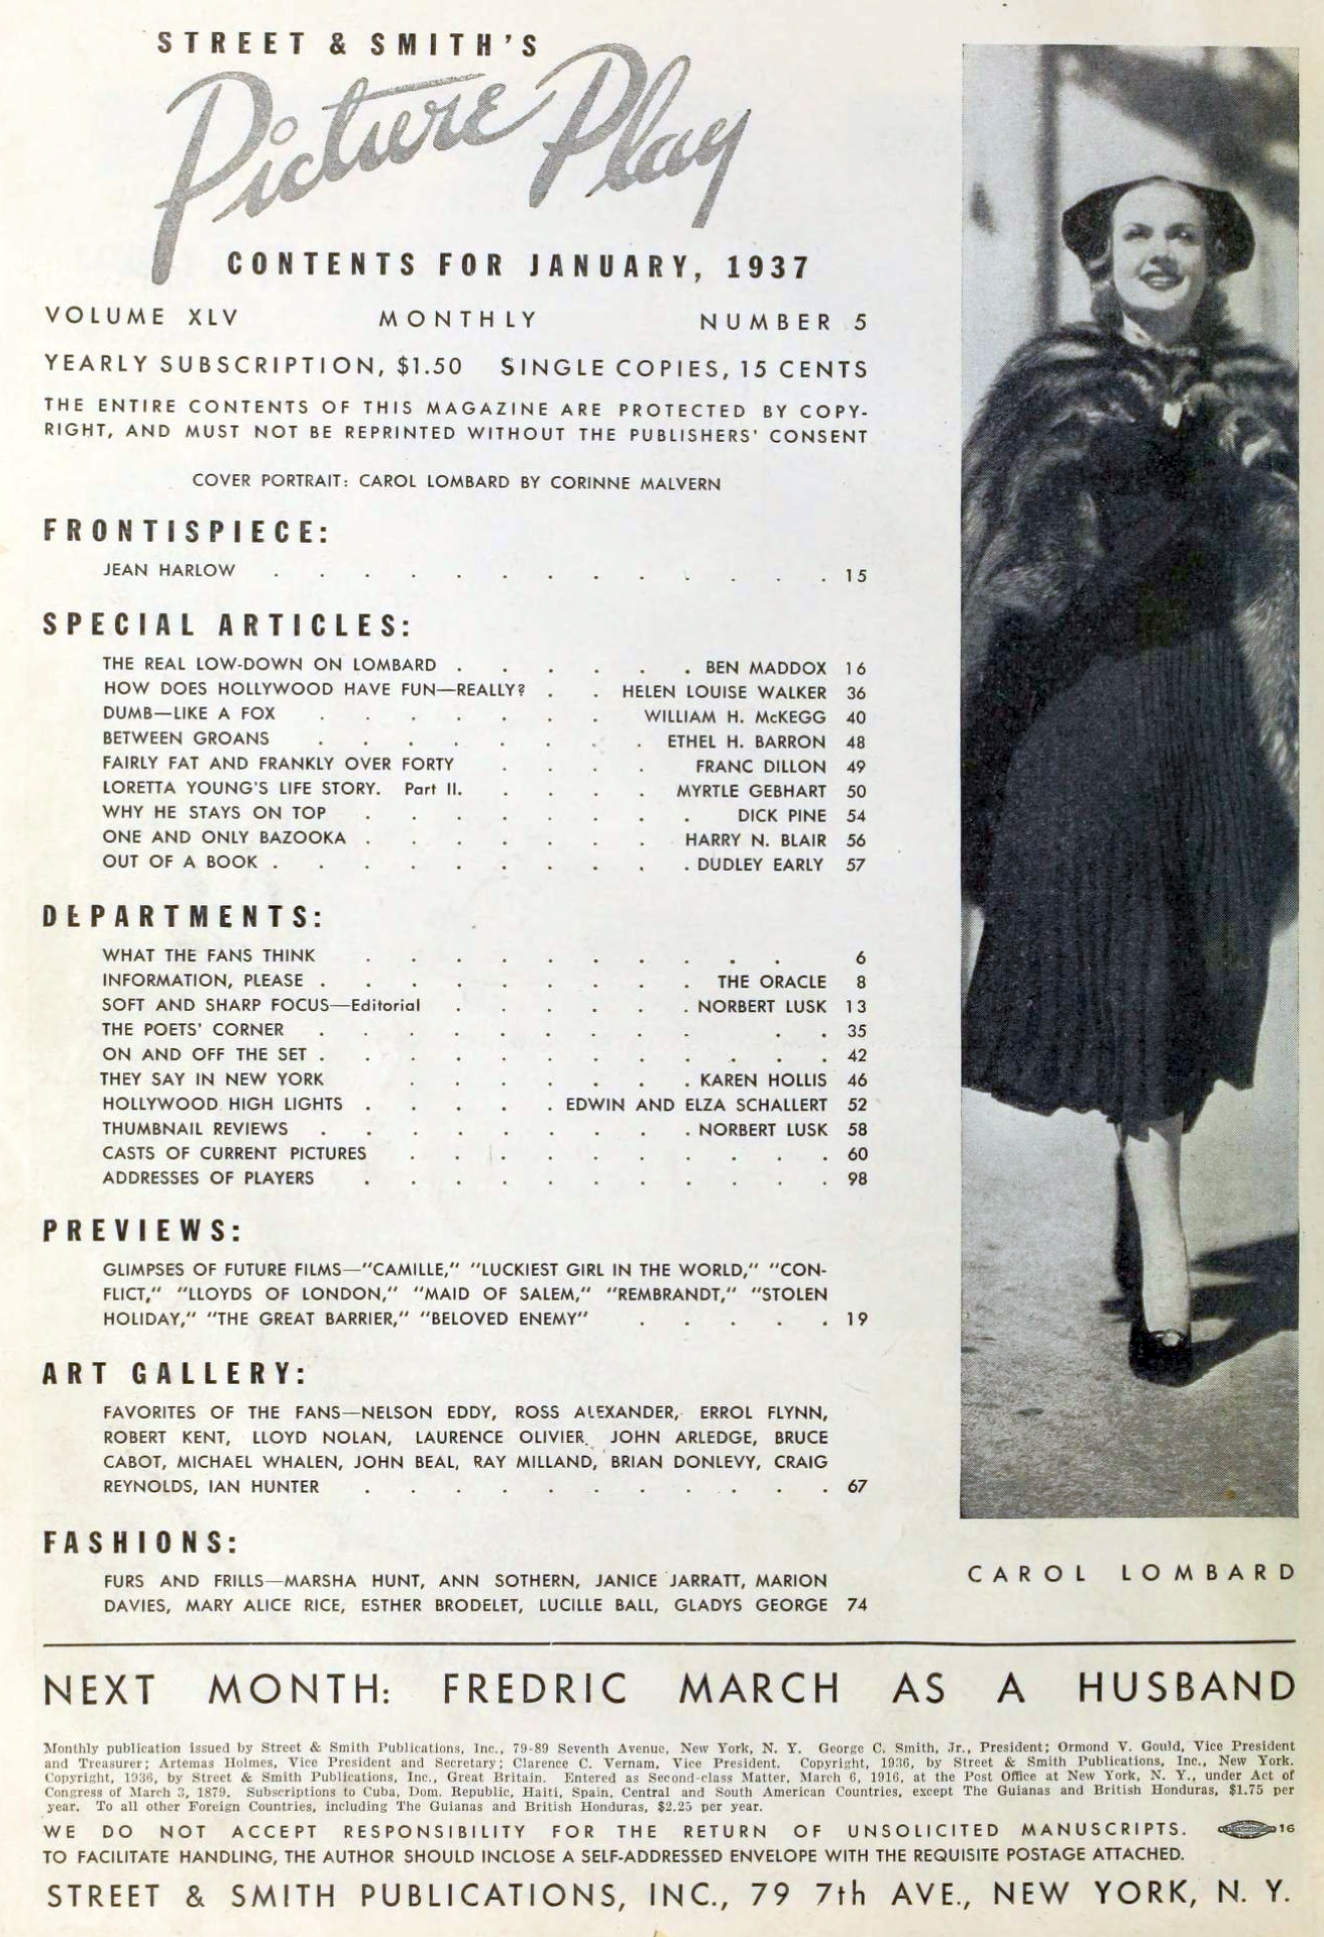 carole lombard picture play january 1937 table of contents large